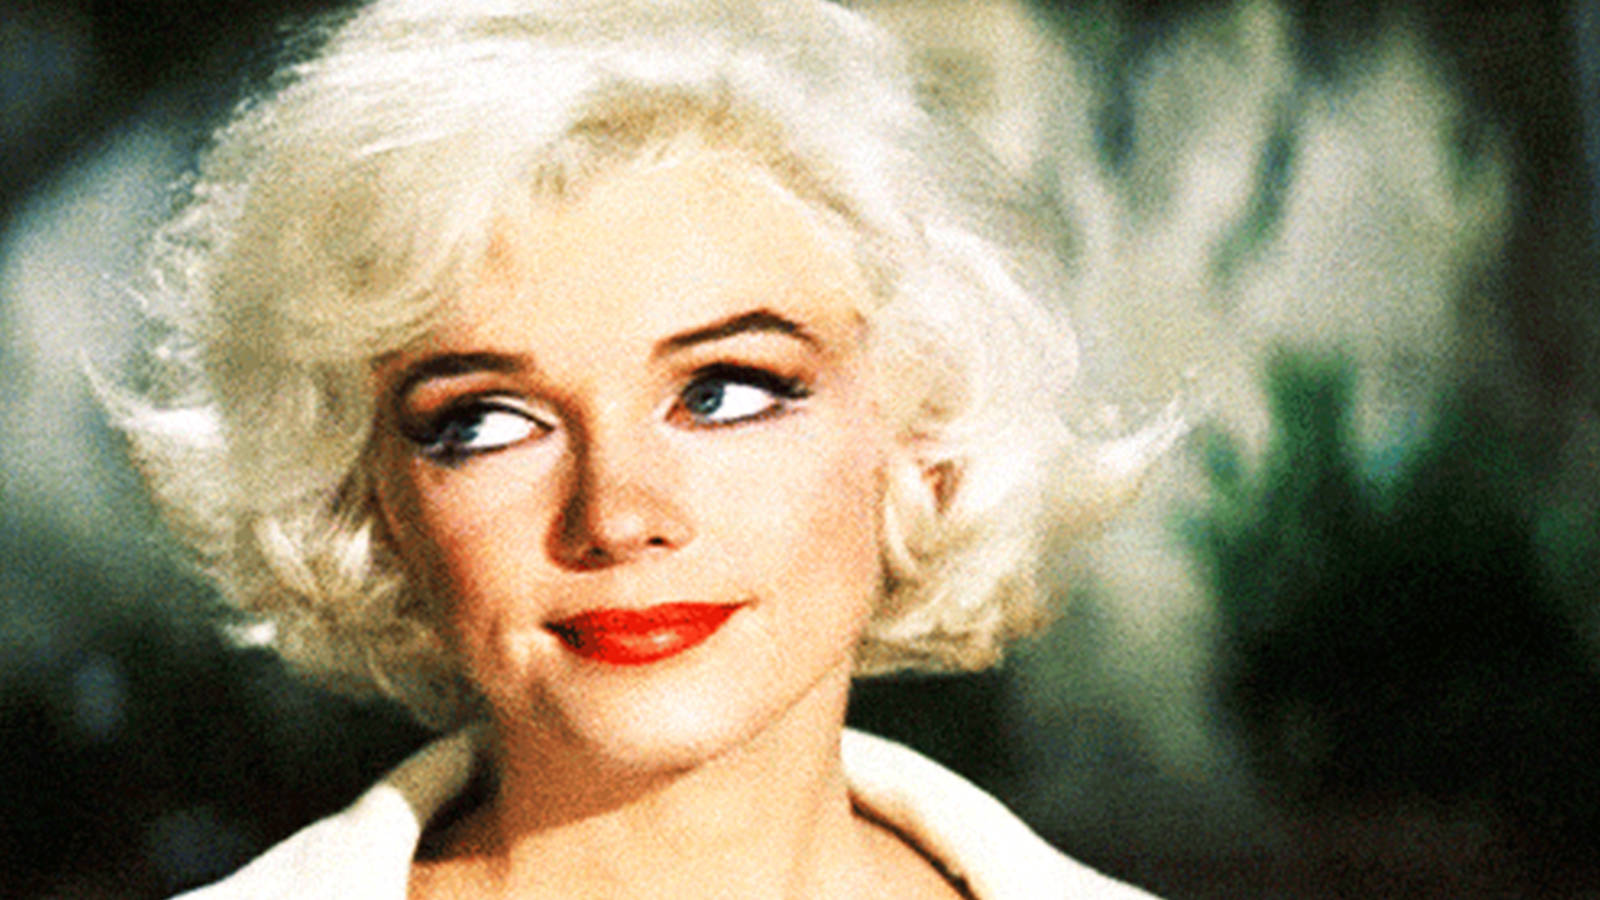 marilyn_monroe_eye_roll_galore_6_14